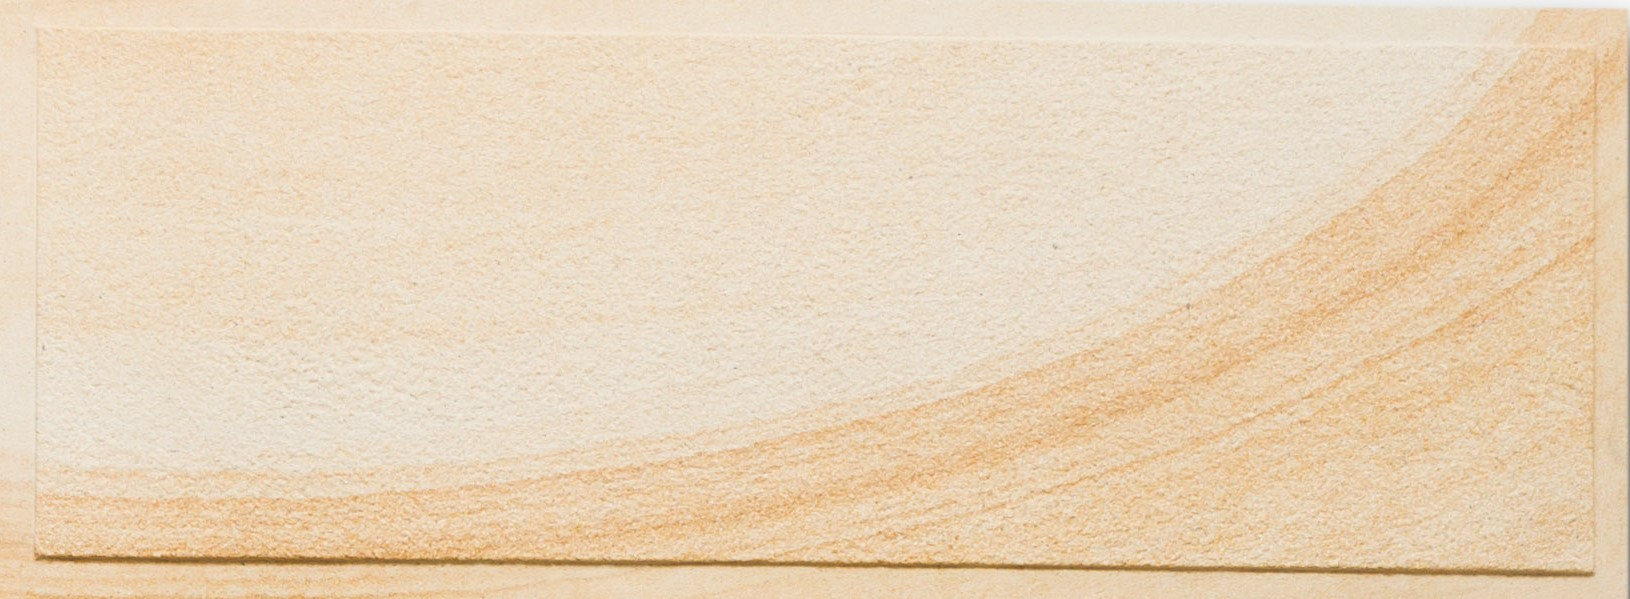 Mt White light Brown Range - Gangsawn with margin (2).jpg